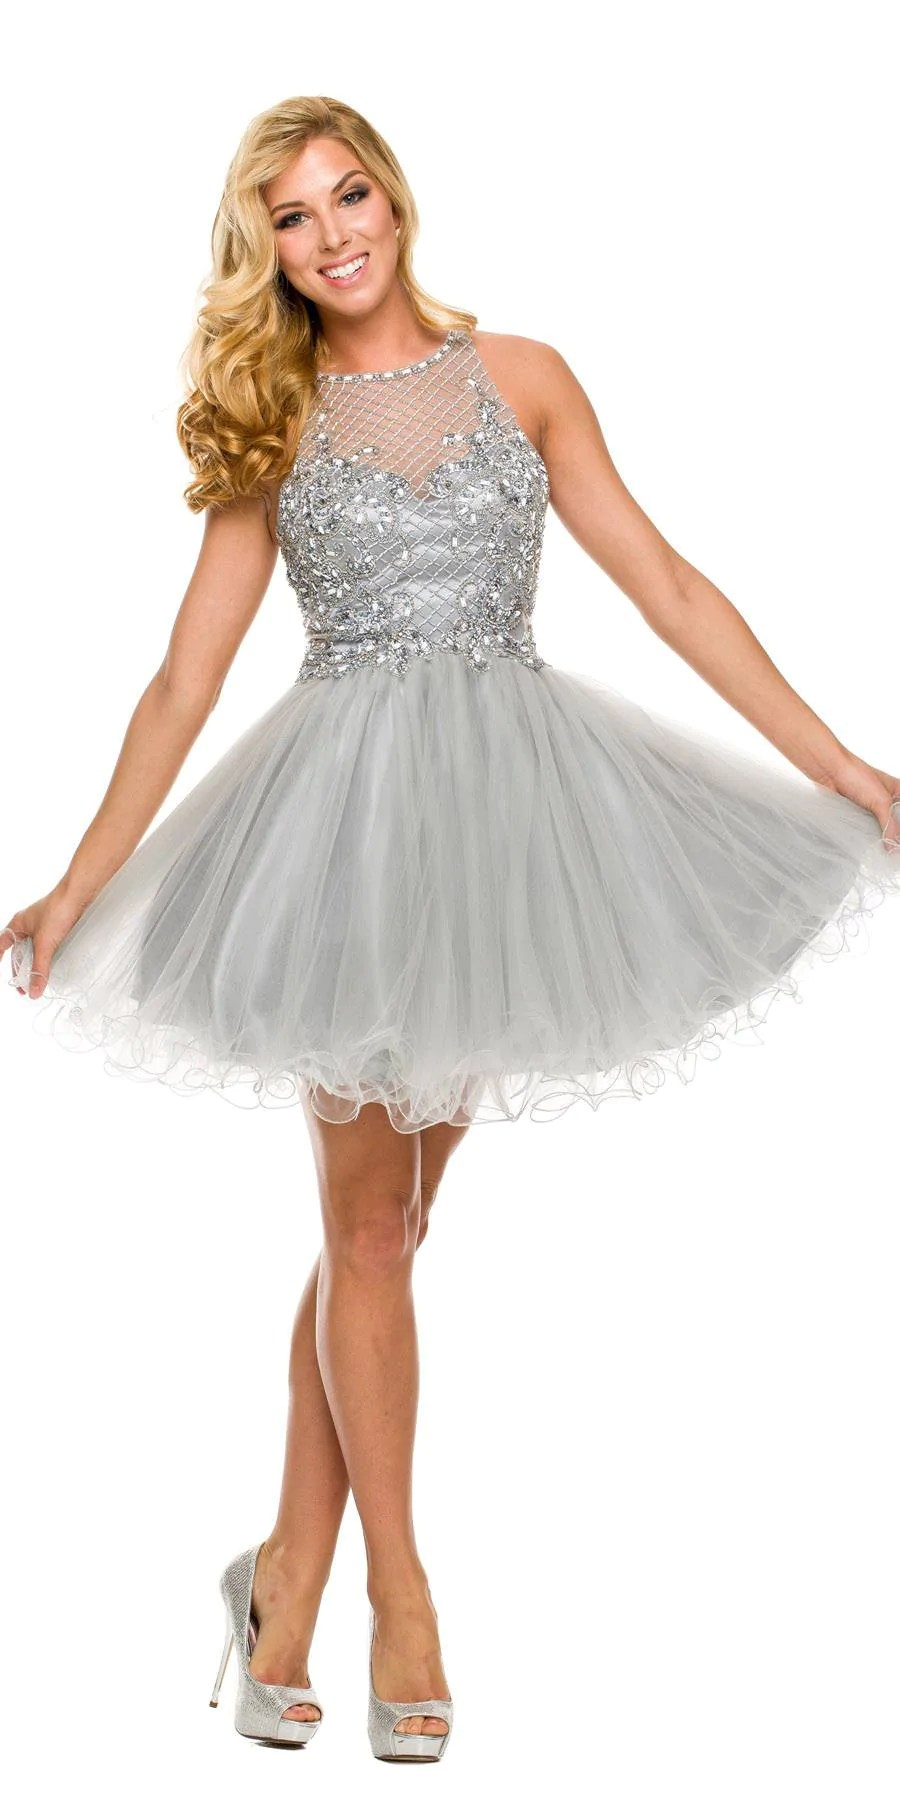 Short Poofy Formal Gown Silver Tulle Skirt A Line High Neck  DiscountDressShop